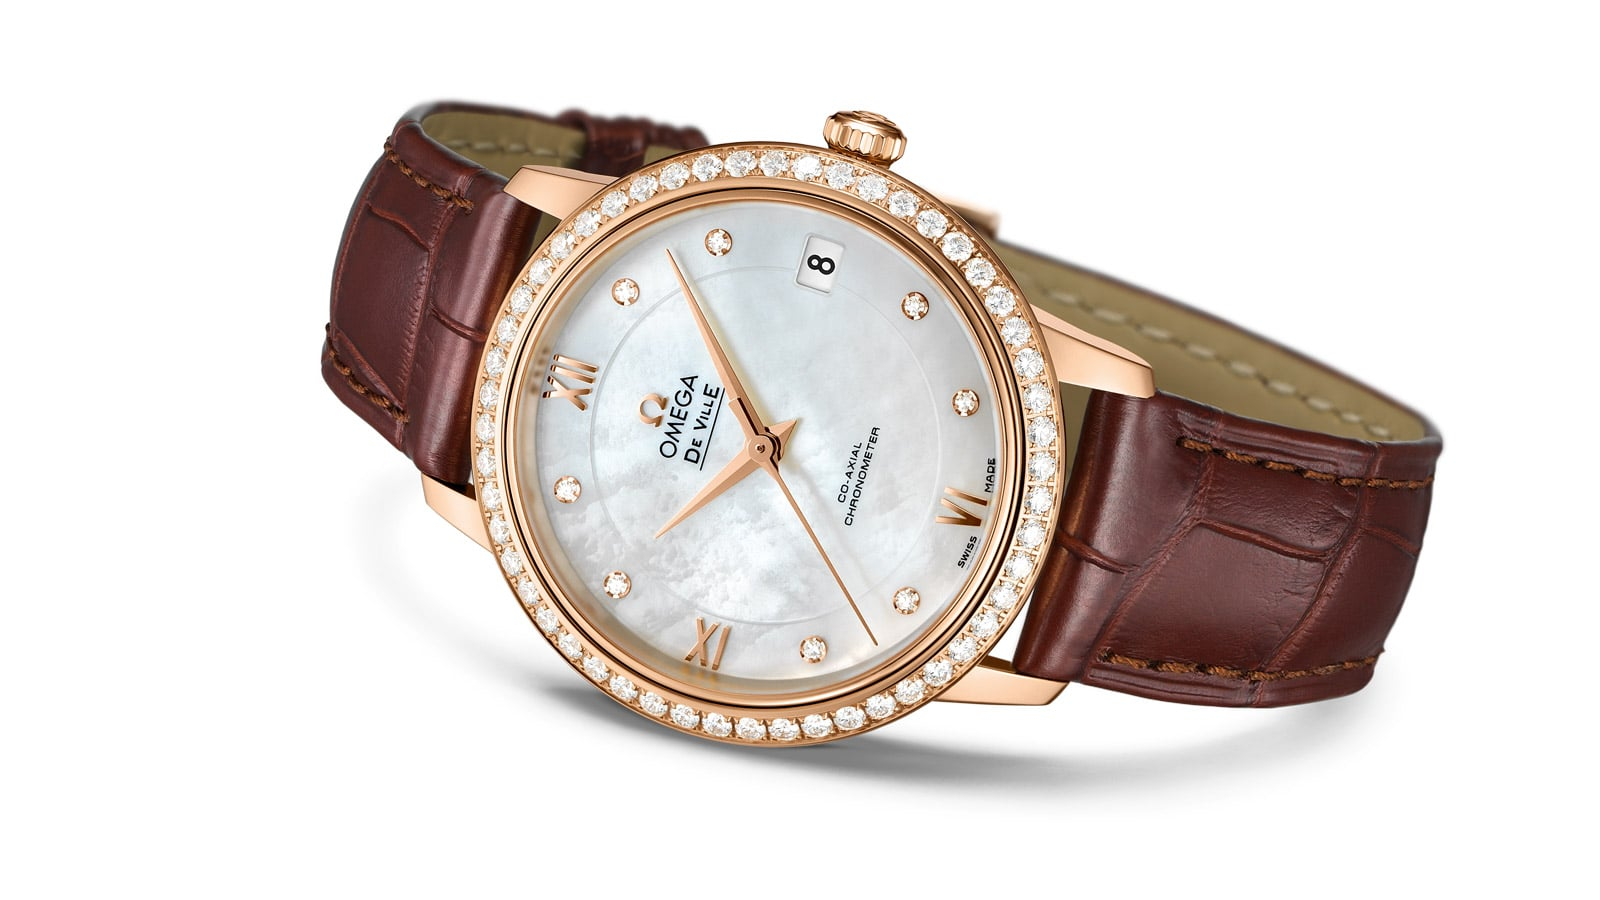 THE OMEGA DE VILLE PRESTIGE LADIES' COLLECTION